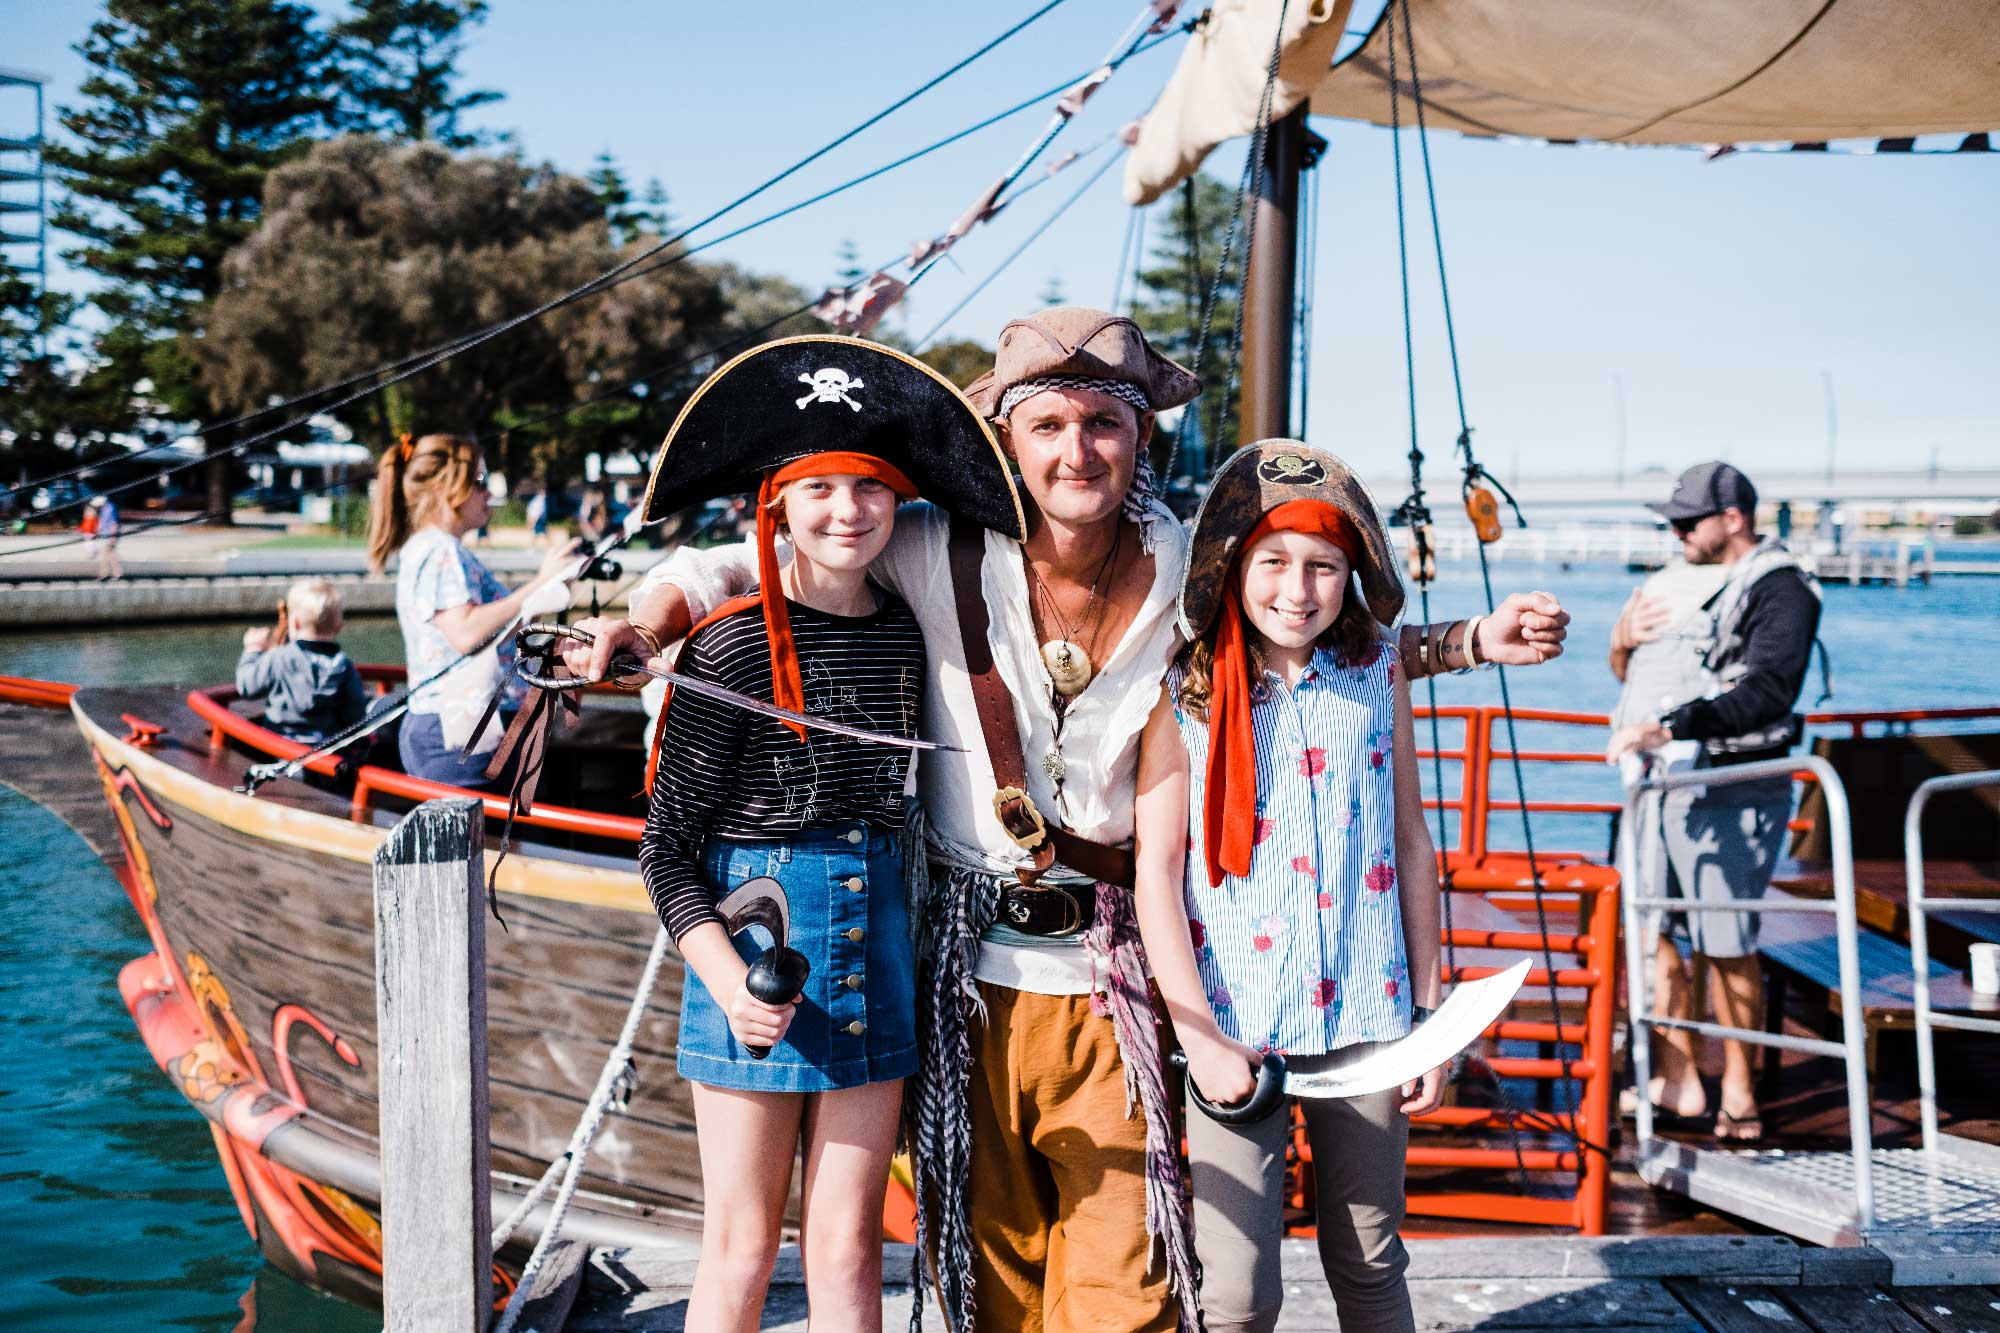 The-Pirate-Cruise-Mandurah